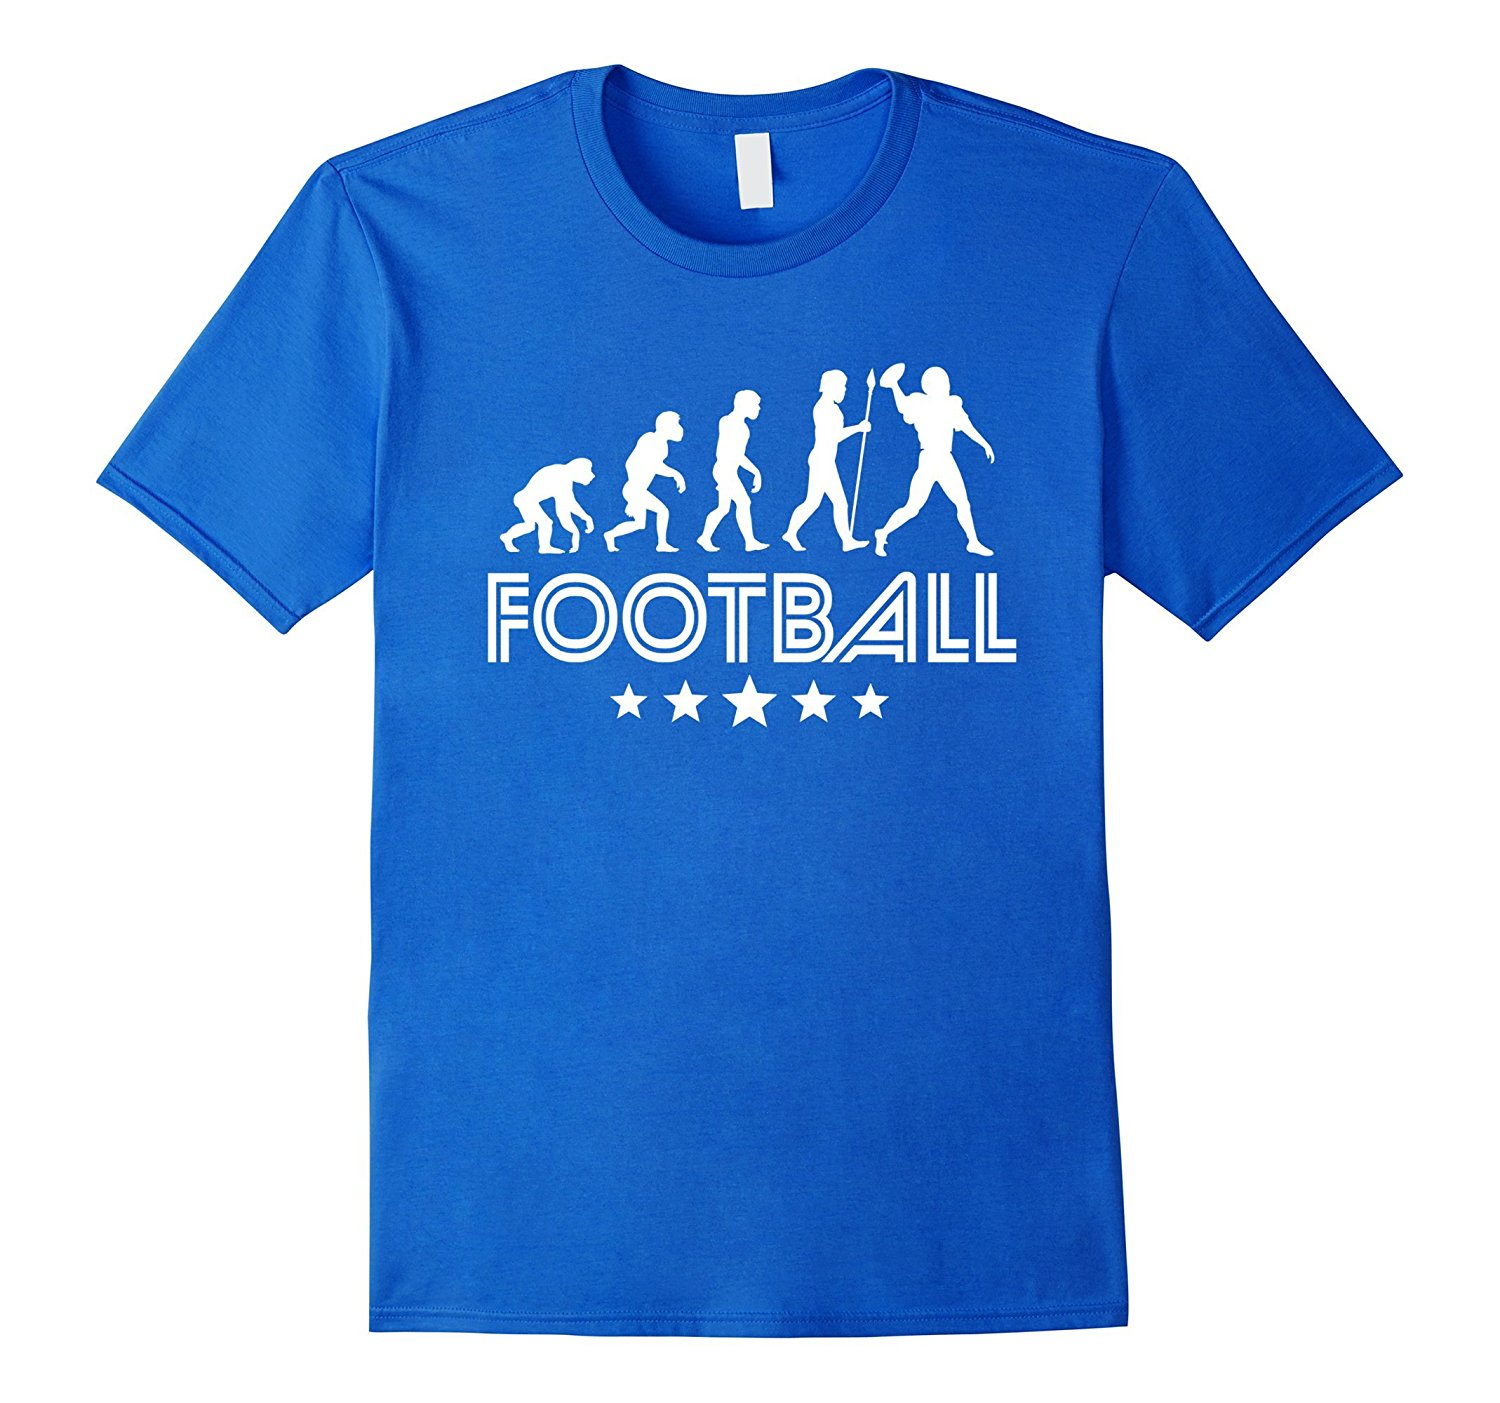 Footballer Evolution Retro Style Graphic T Shirt Cotton